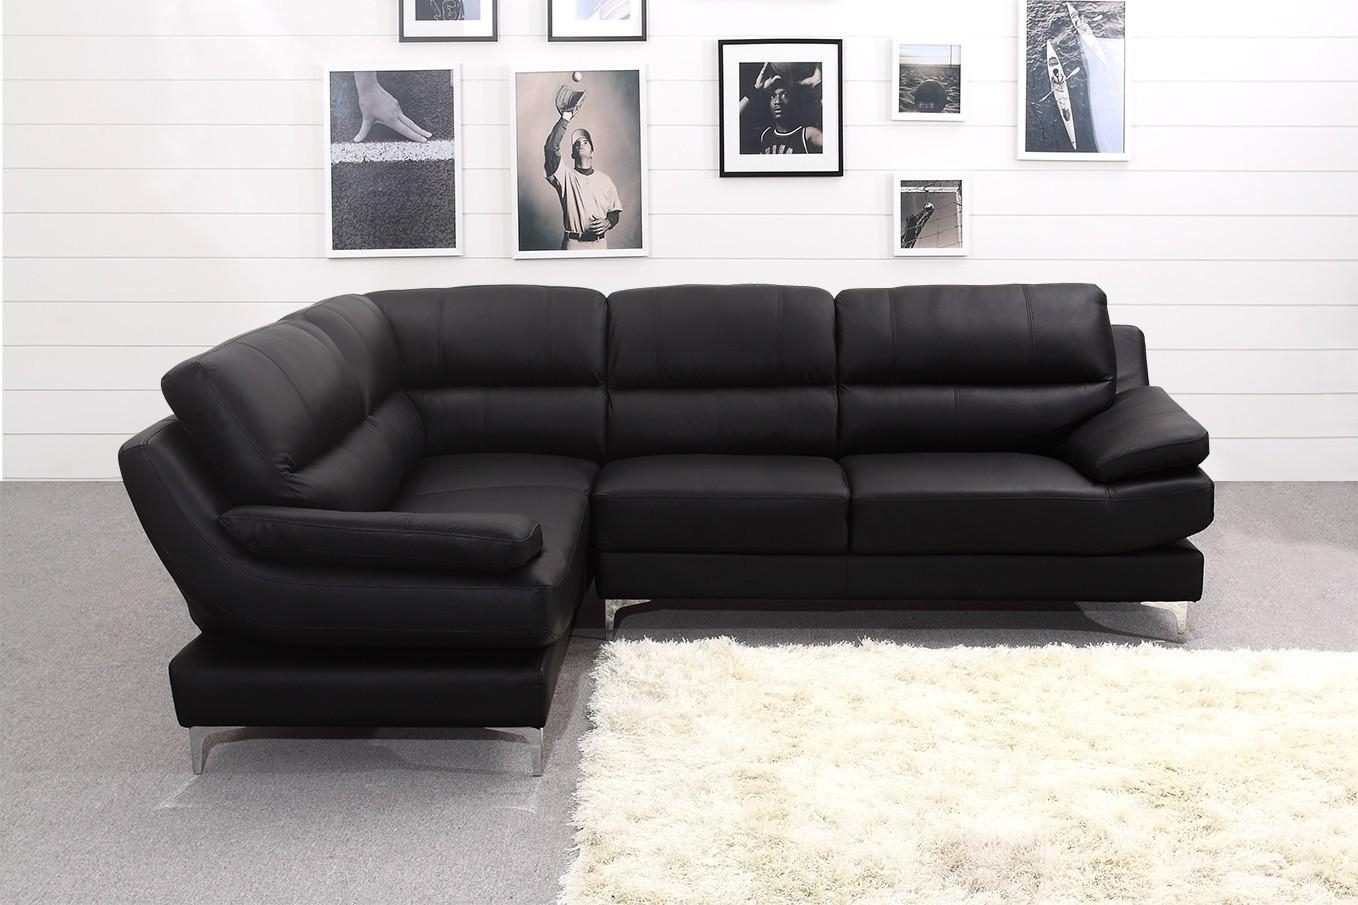 Luxury Black Leather Corner Sofa (Image 18 of 22)